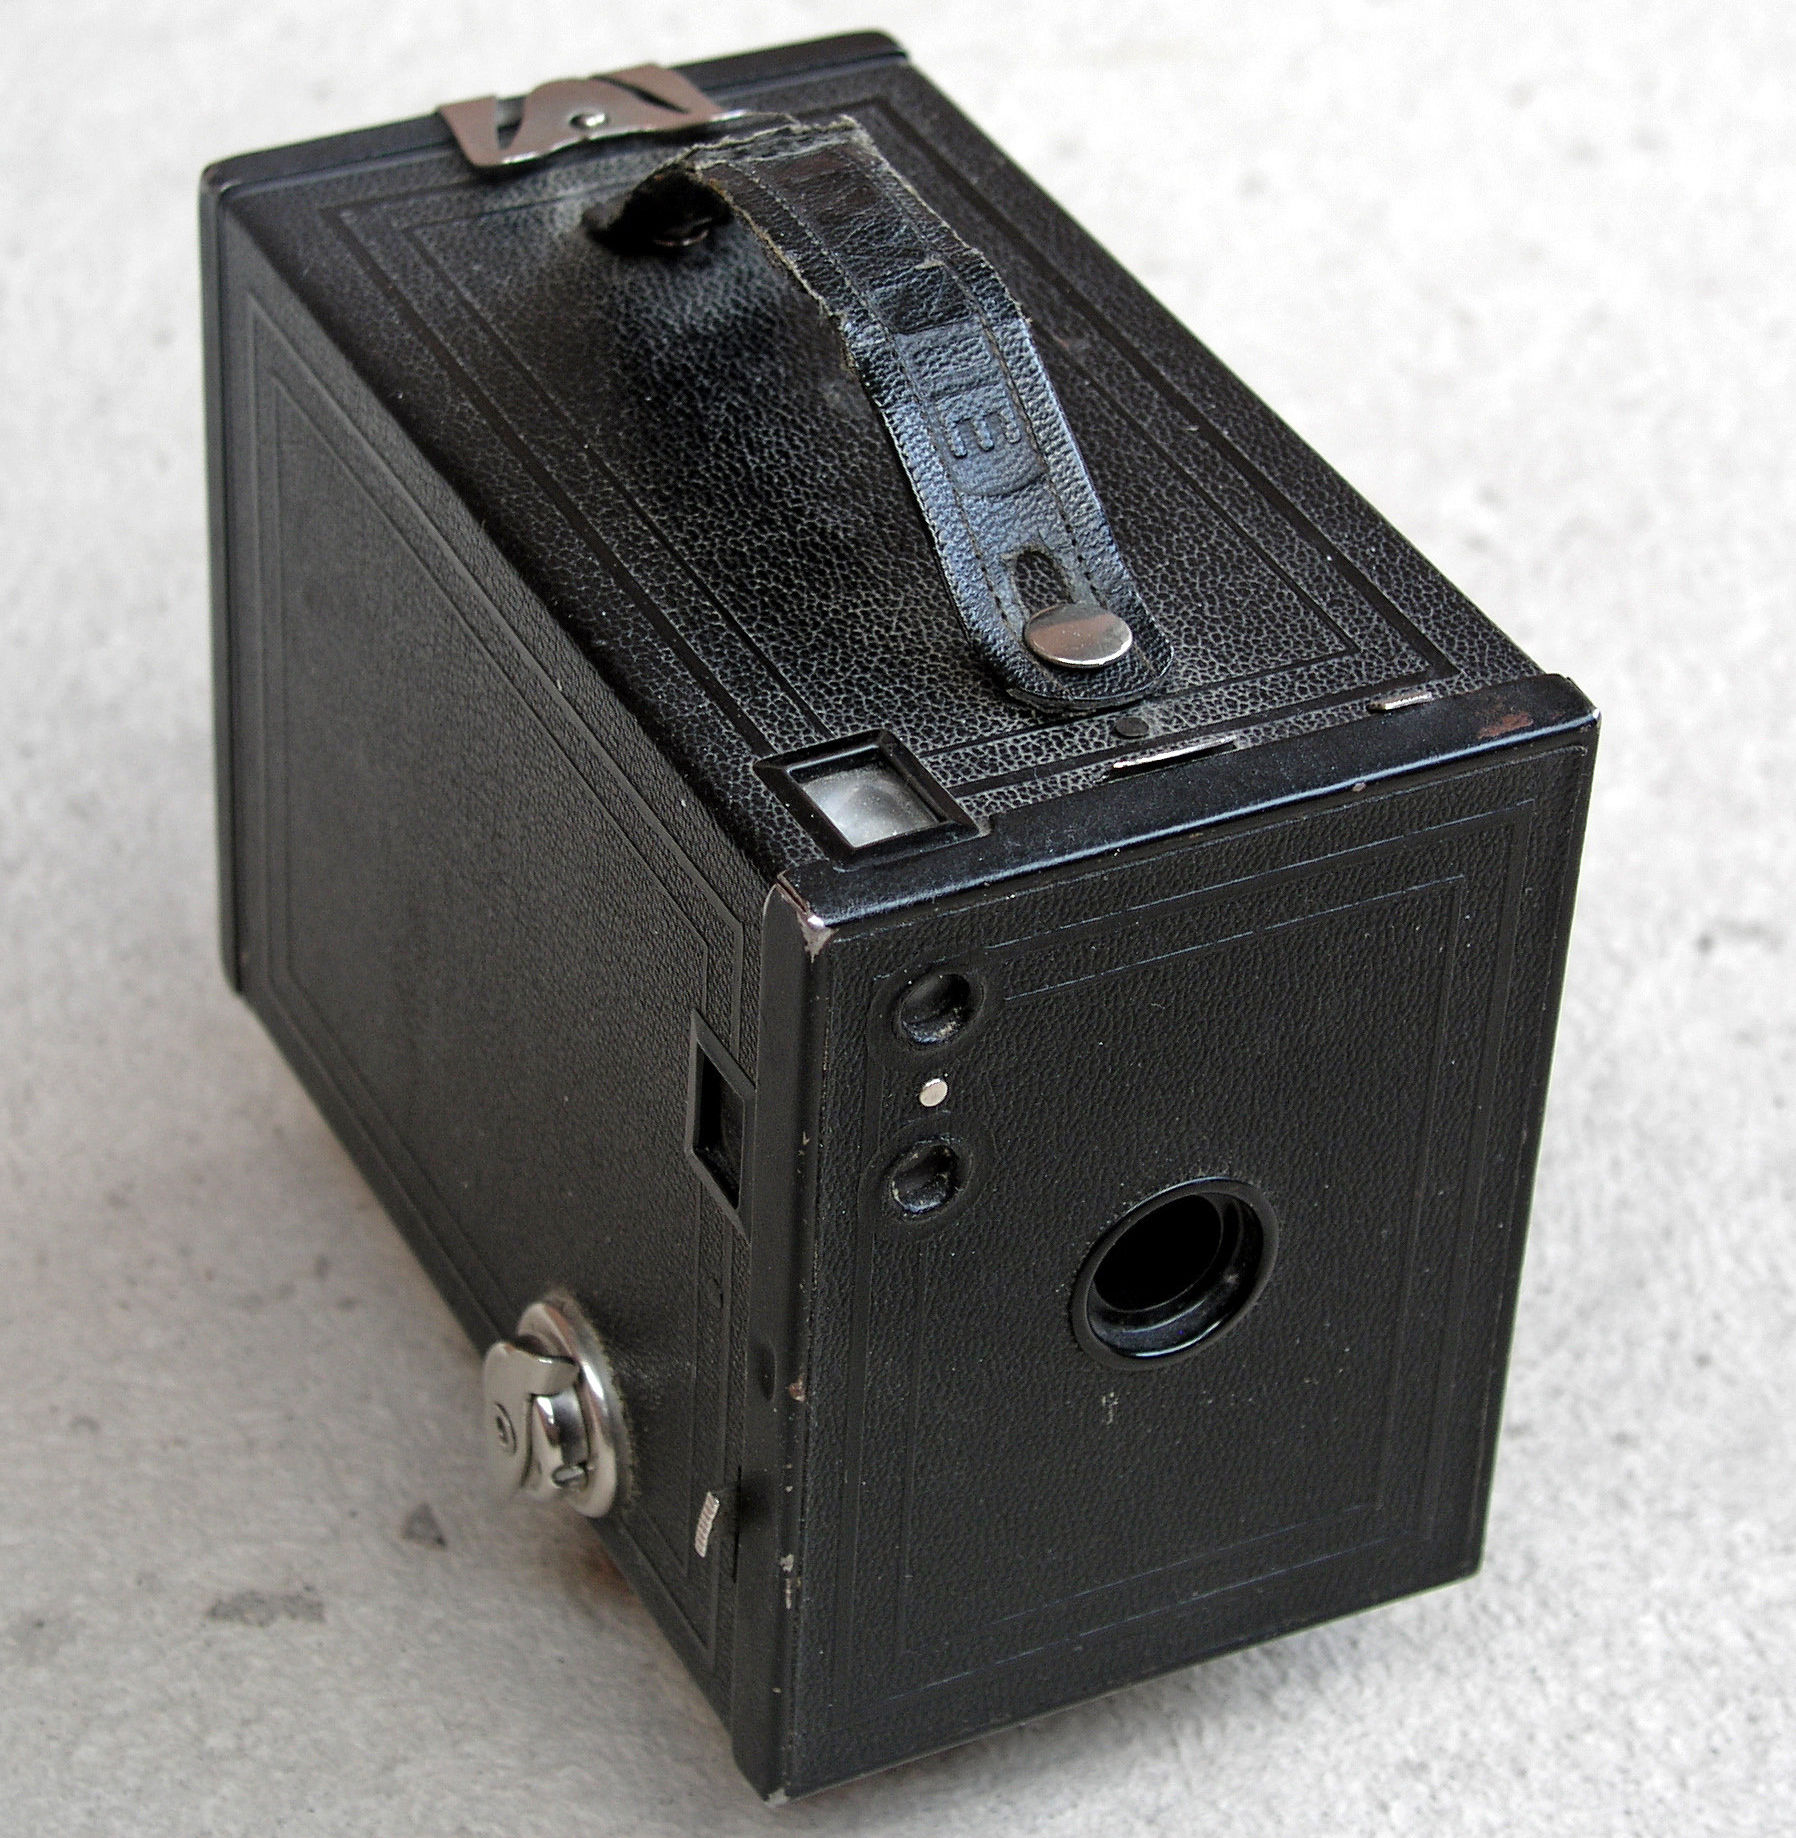 Kodak Brownie Camera. Архивное фото